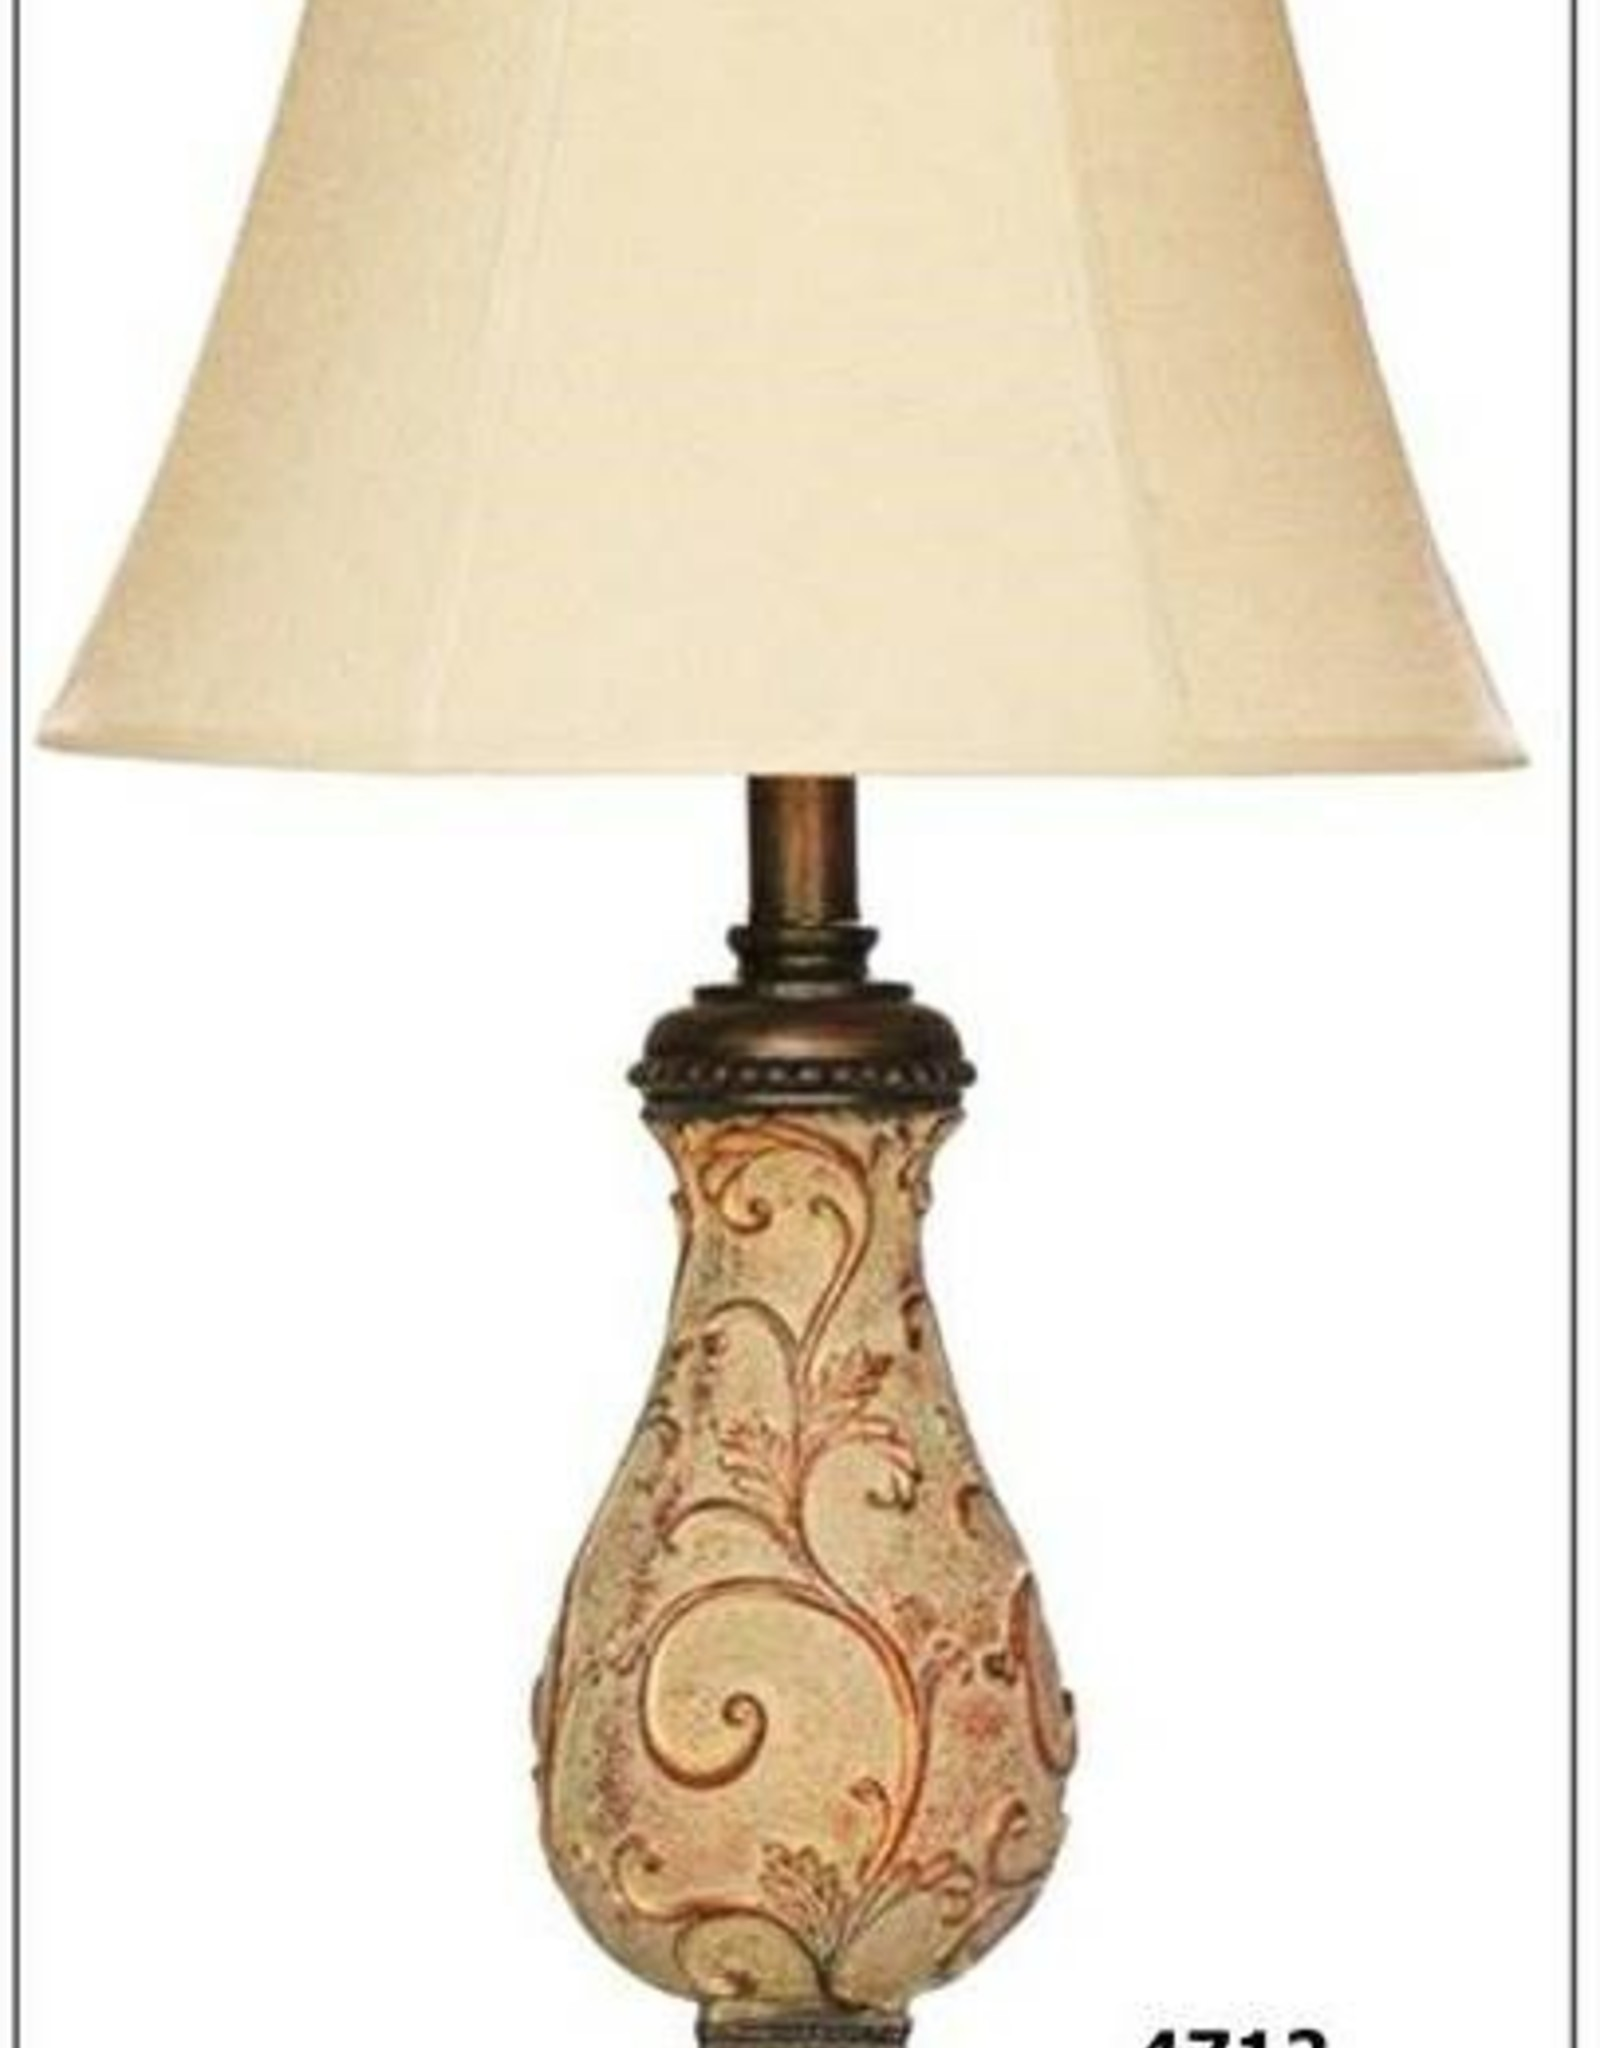 H&H 4712 Berber Finish Lamp